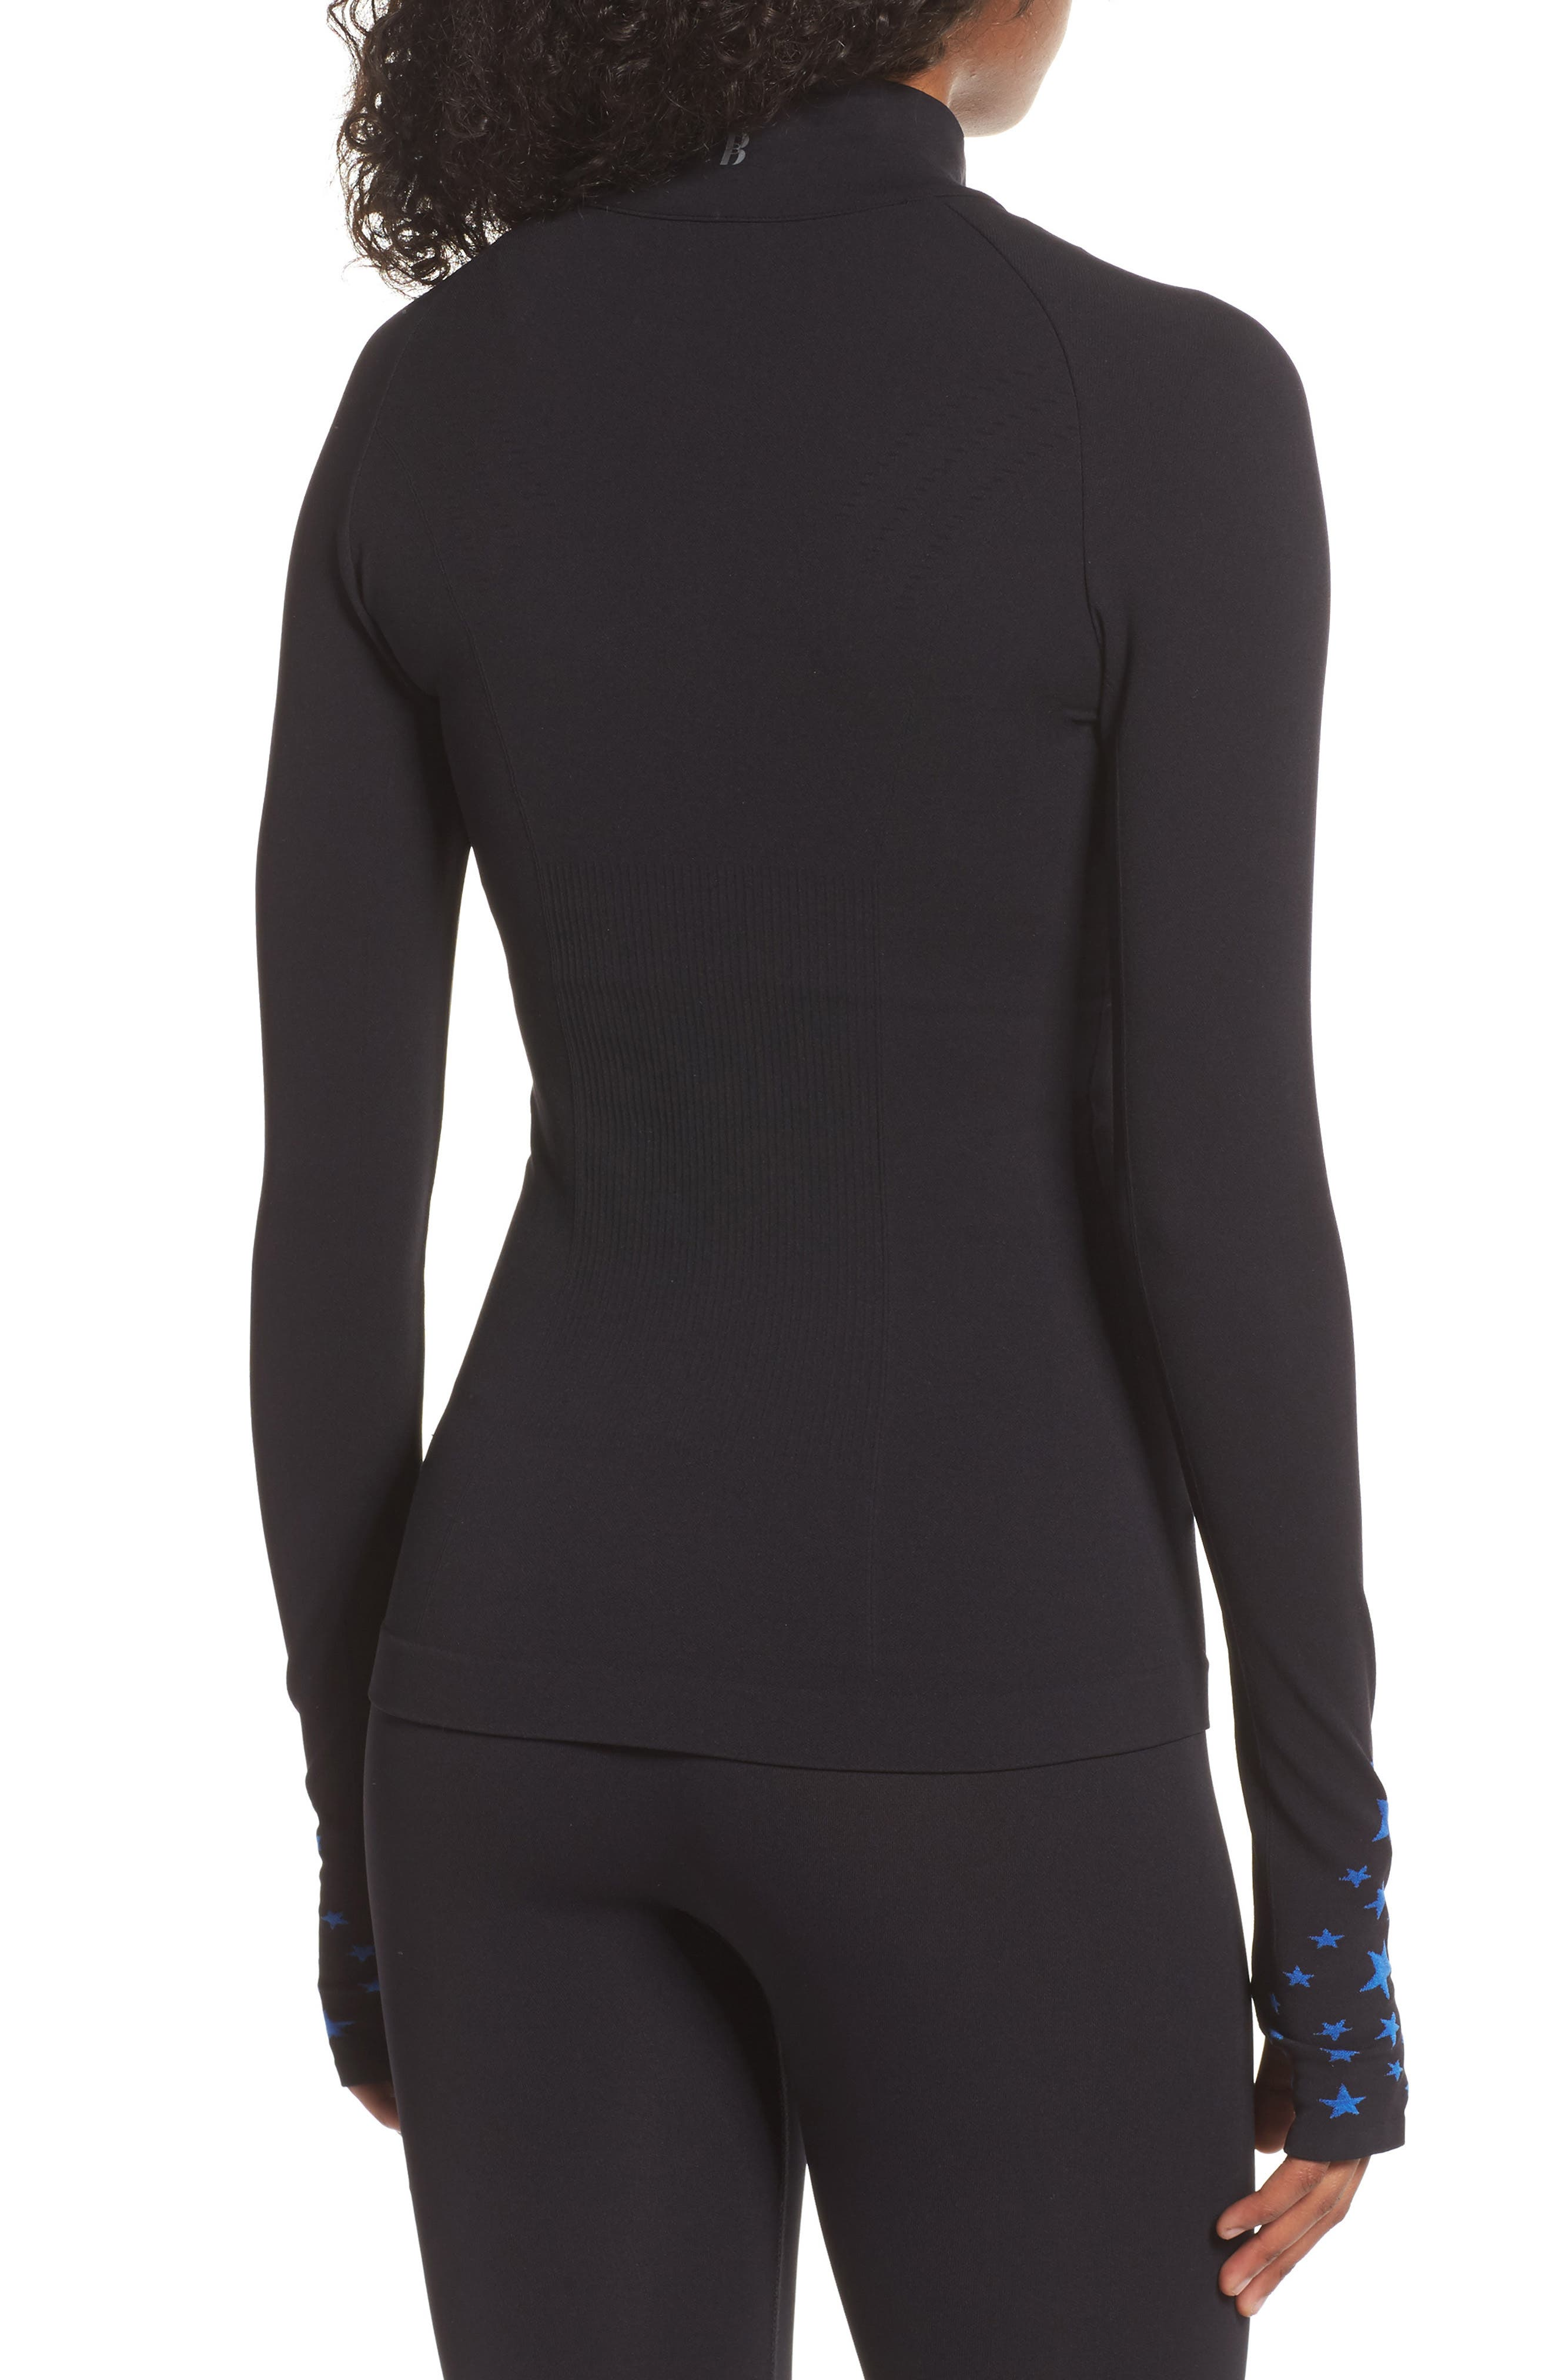 BoomBoom Athletica Seamless Star Jacket,                             Alternate thumbnail 2, color,                             006